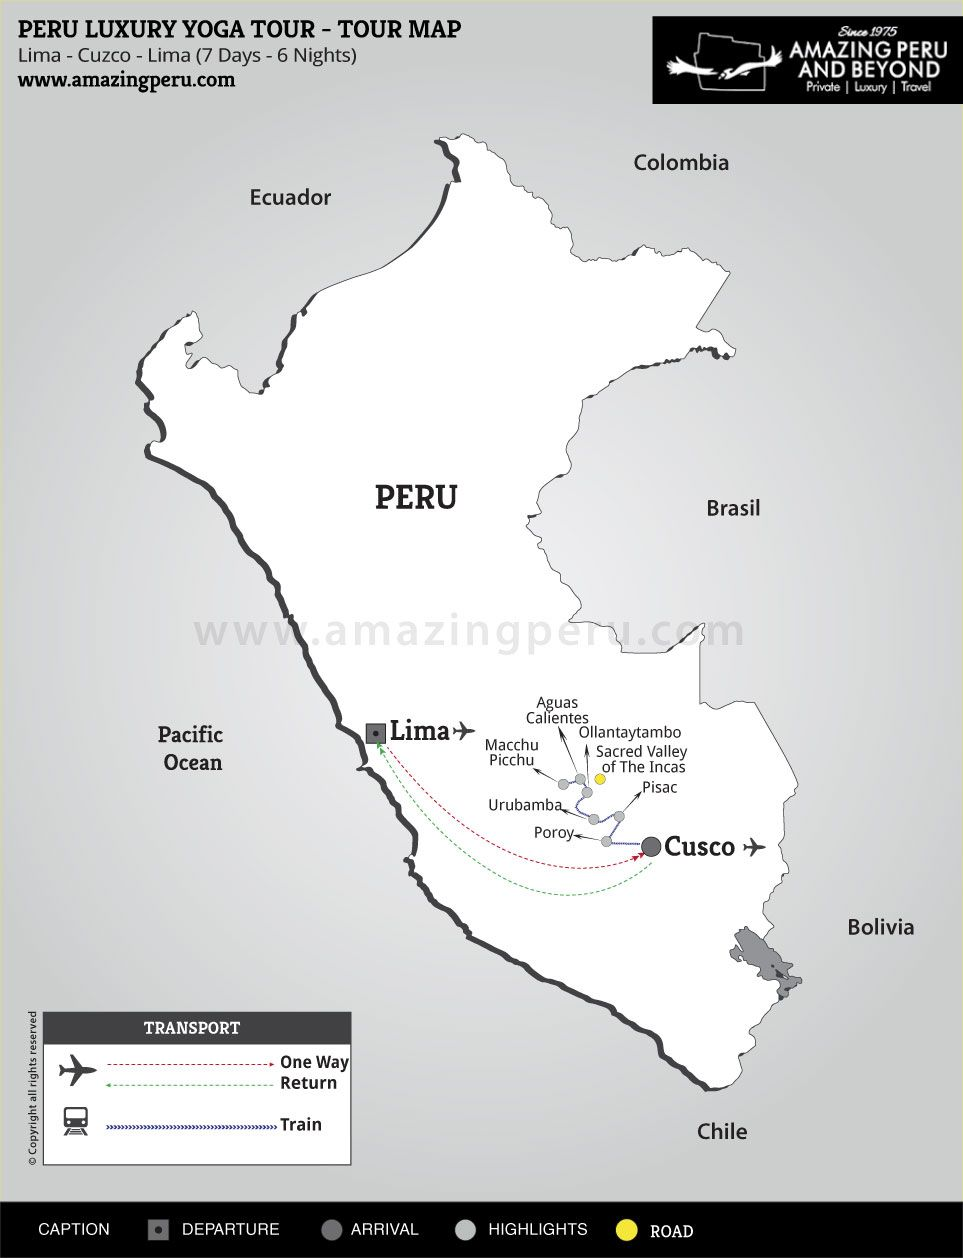 Peru Luxury Yoga Tour - 7 days / 6 nights.